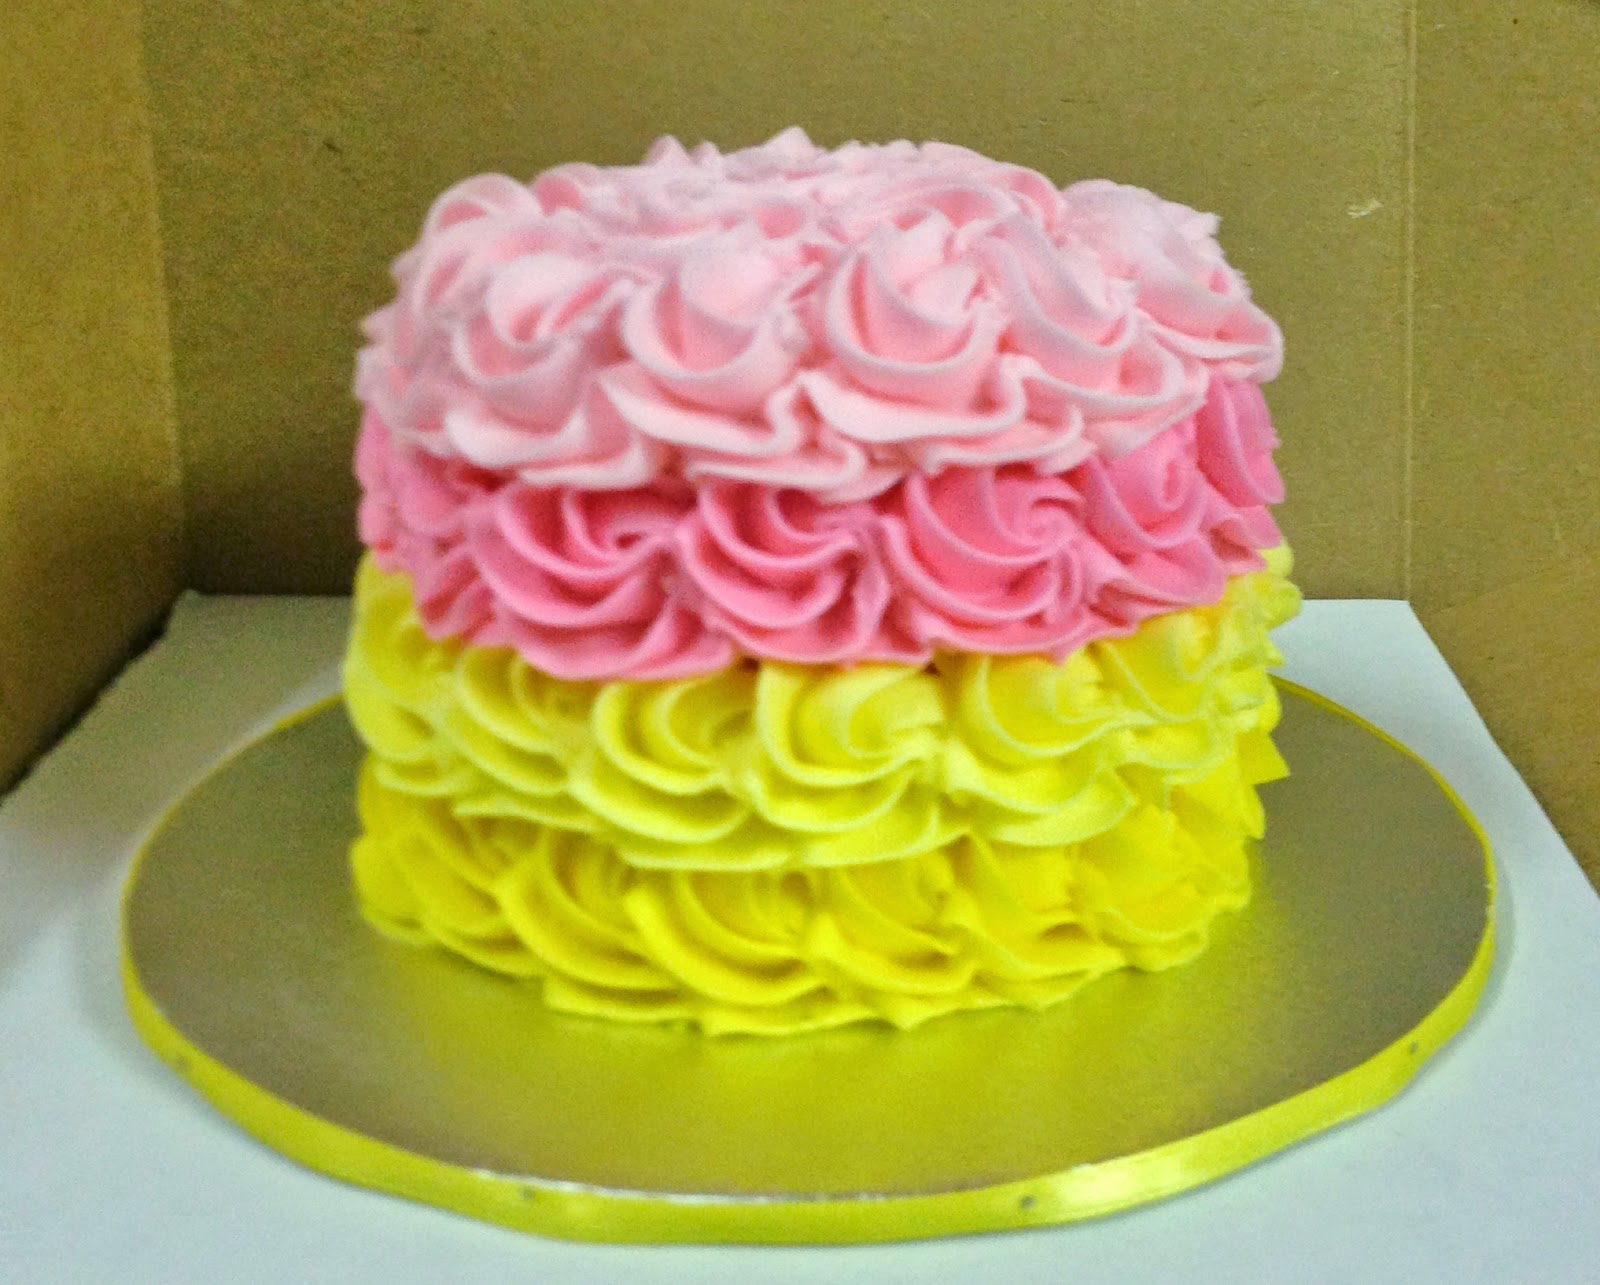 Cakes by Mindy: Yellow and Pink Lemonade Cupcakes and Rosette Smash Cake